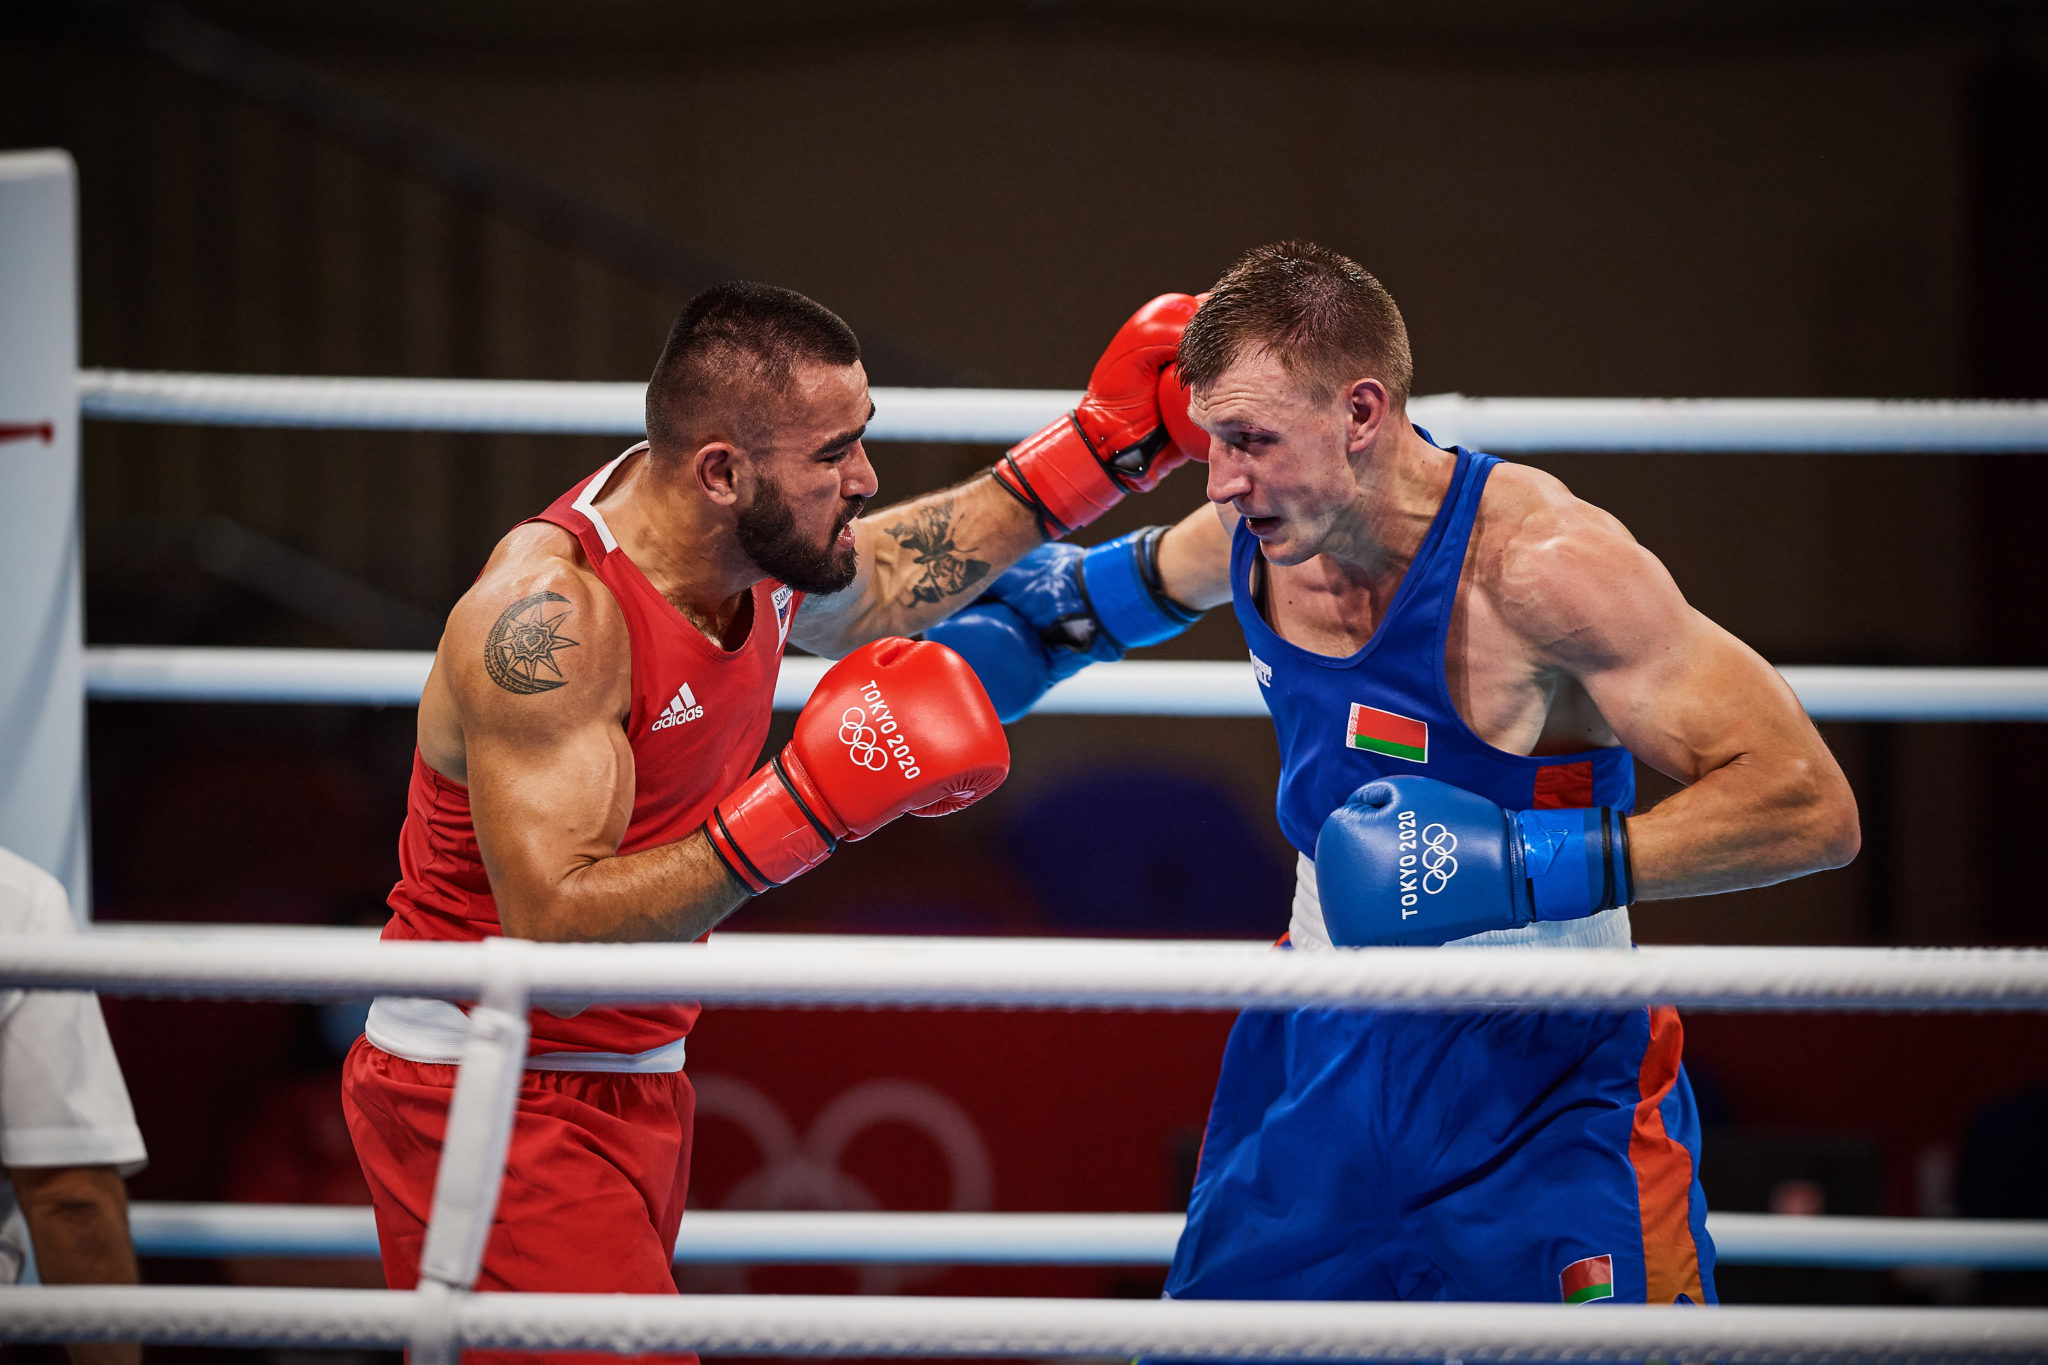 Photo: Uladzislau Smiahlikau (in blue) from Belarus beat Ato Leau Plodzicki-Faoagali (in red) from Samoa in the men's heavyweight boxing preliminaries Round of 16 during 2020 Tokyo Olympics at the Kokugikan Arena in Tokyo, Japan.